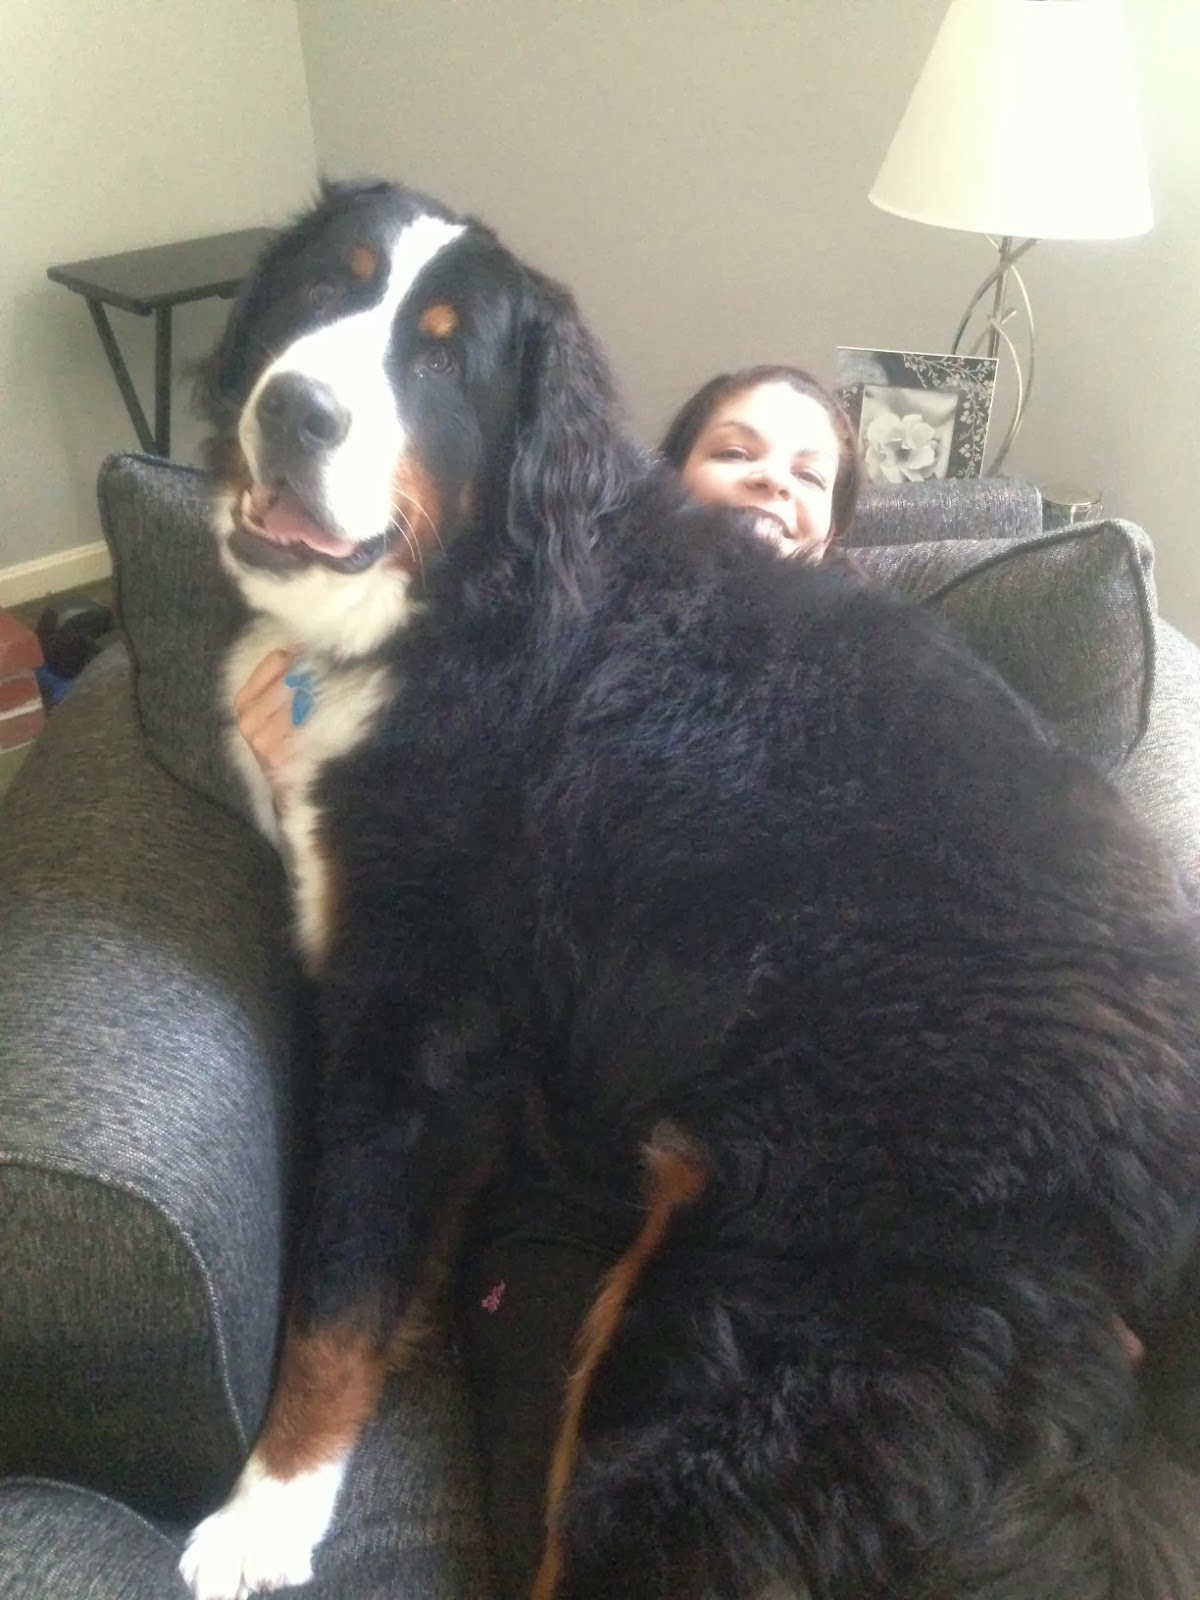 Cute dogs - part 6 (50 pics), a big dog sits on girl lap